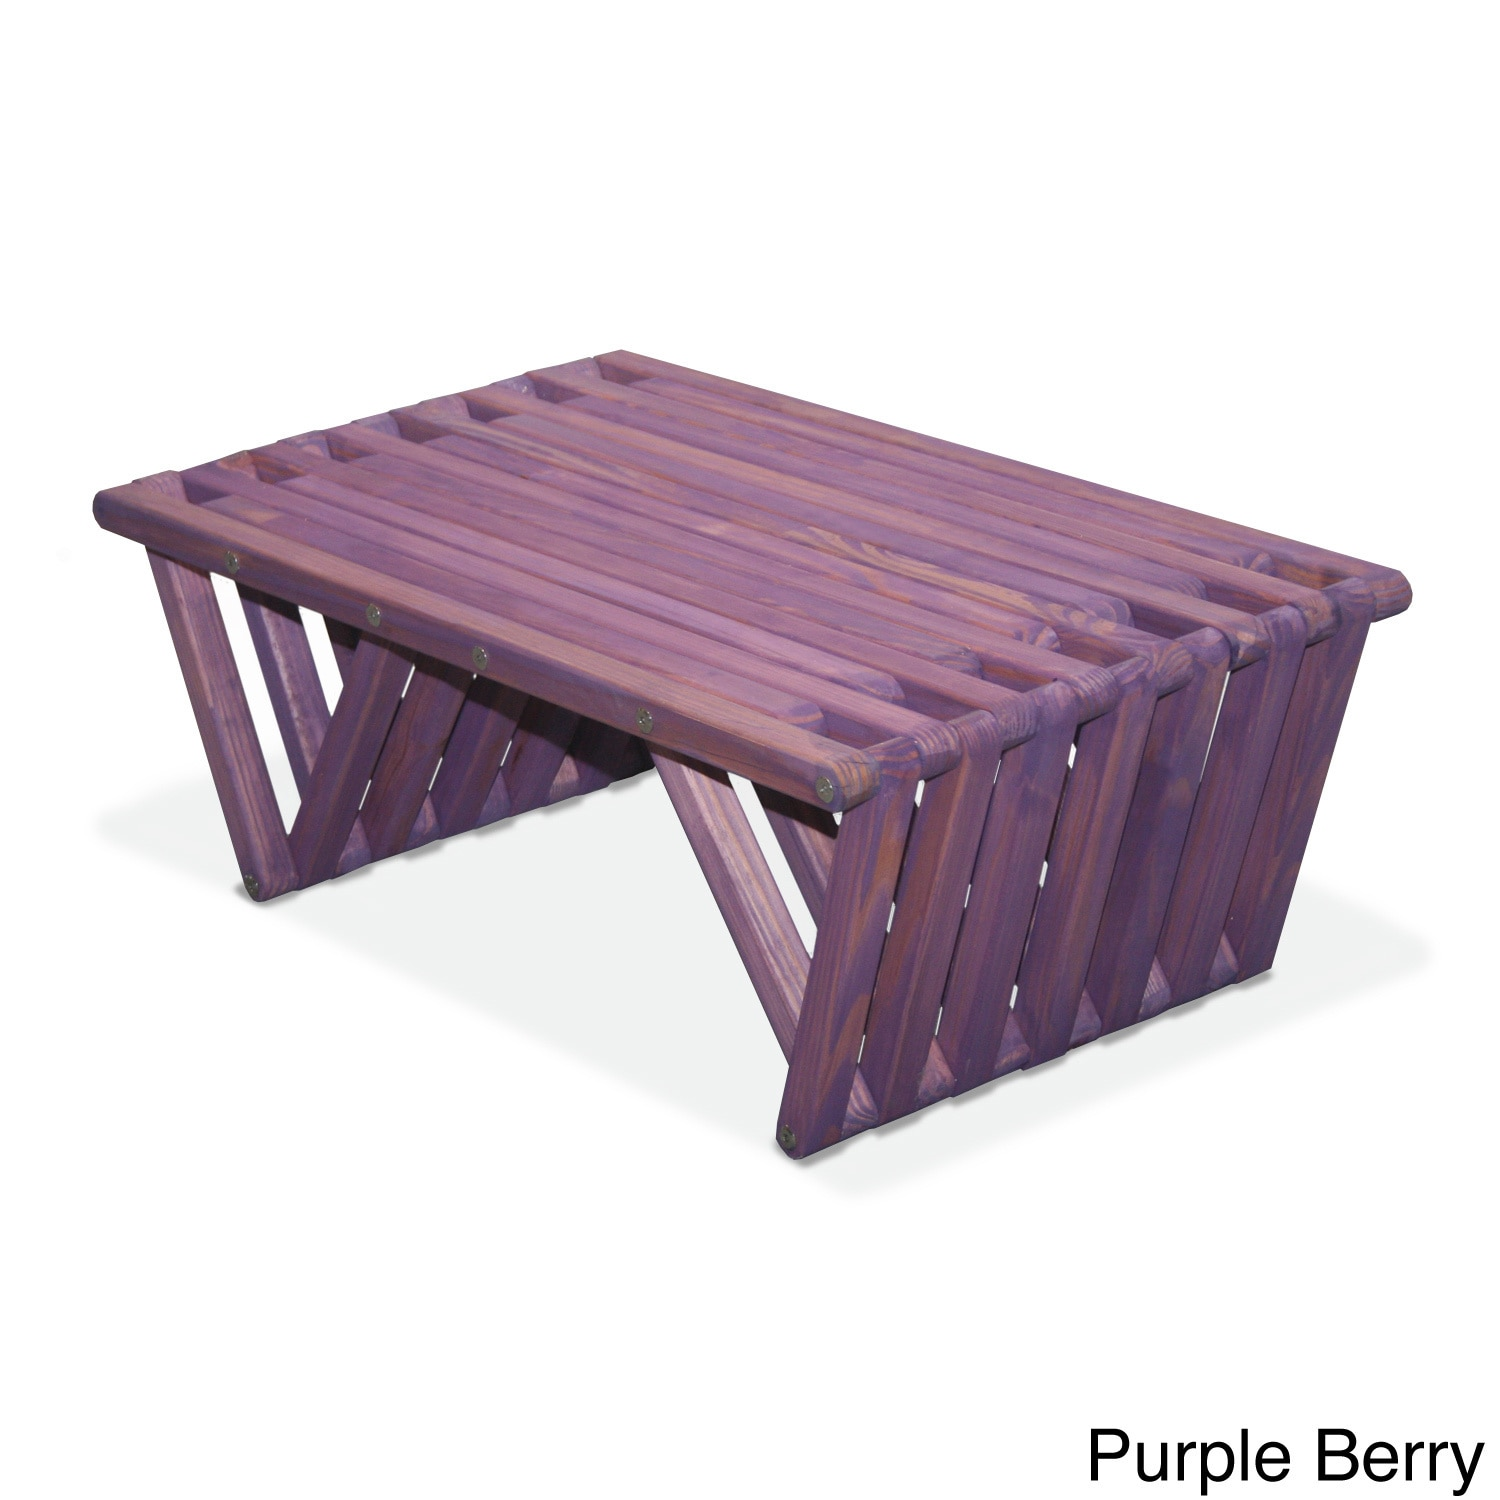 Eco Friendly Coffee Table X36 Made in USA Purple Berry